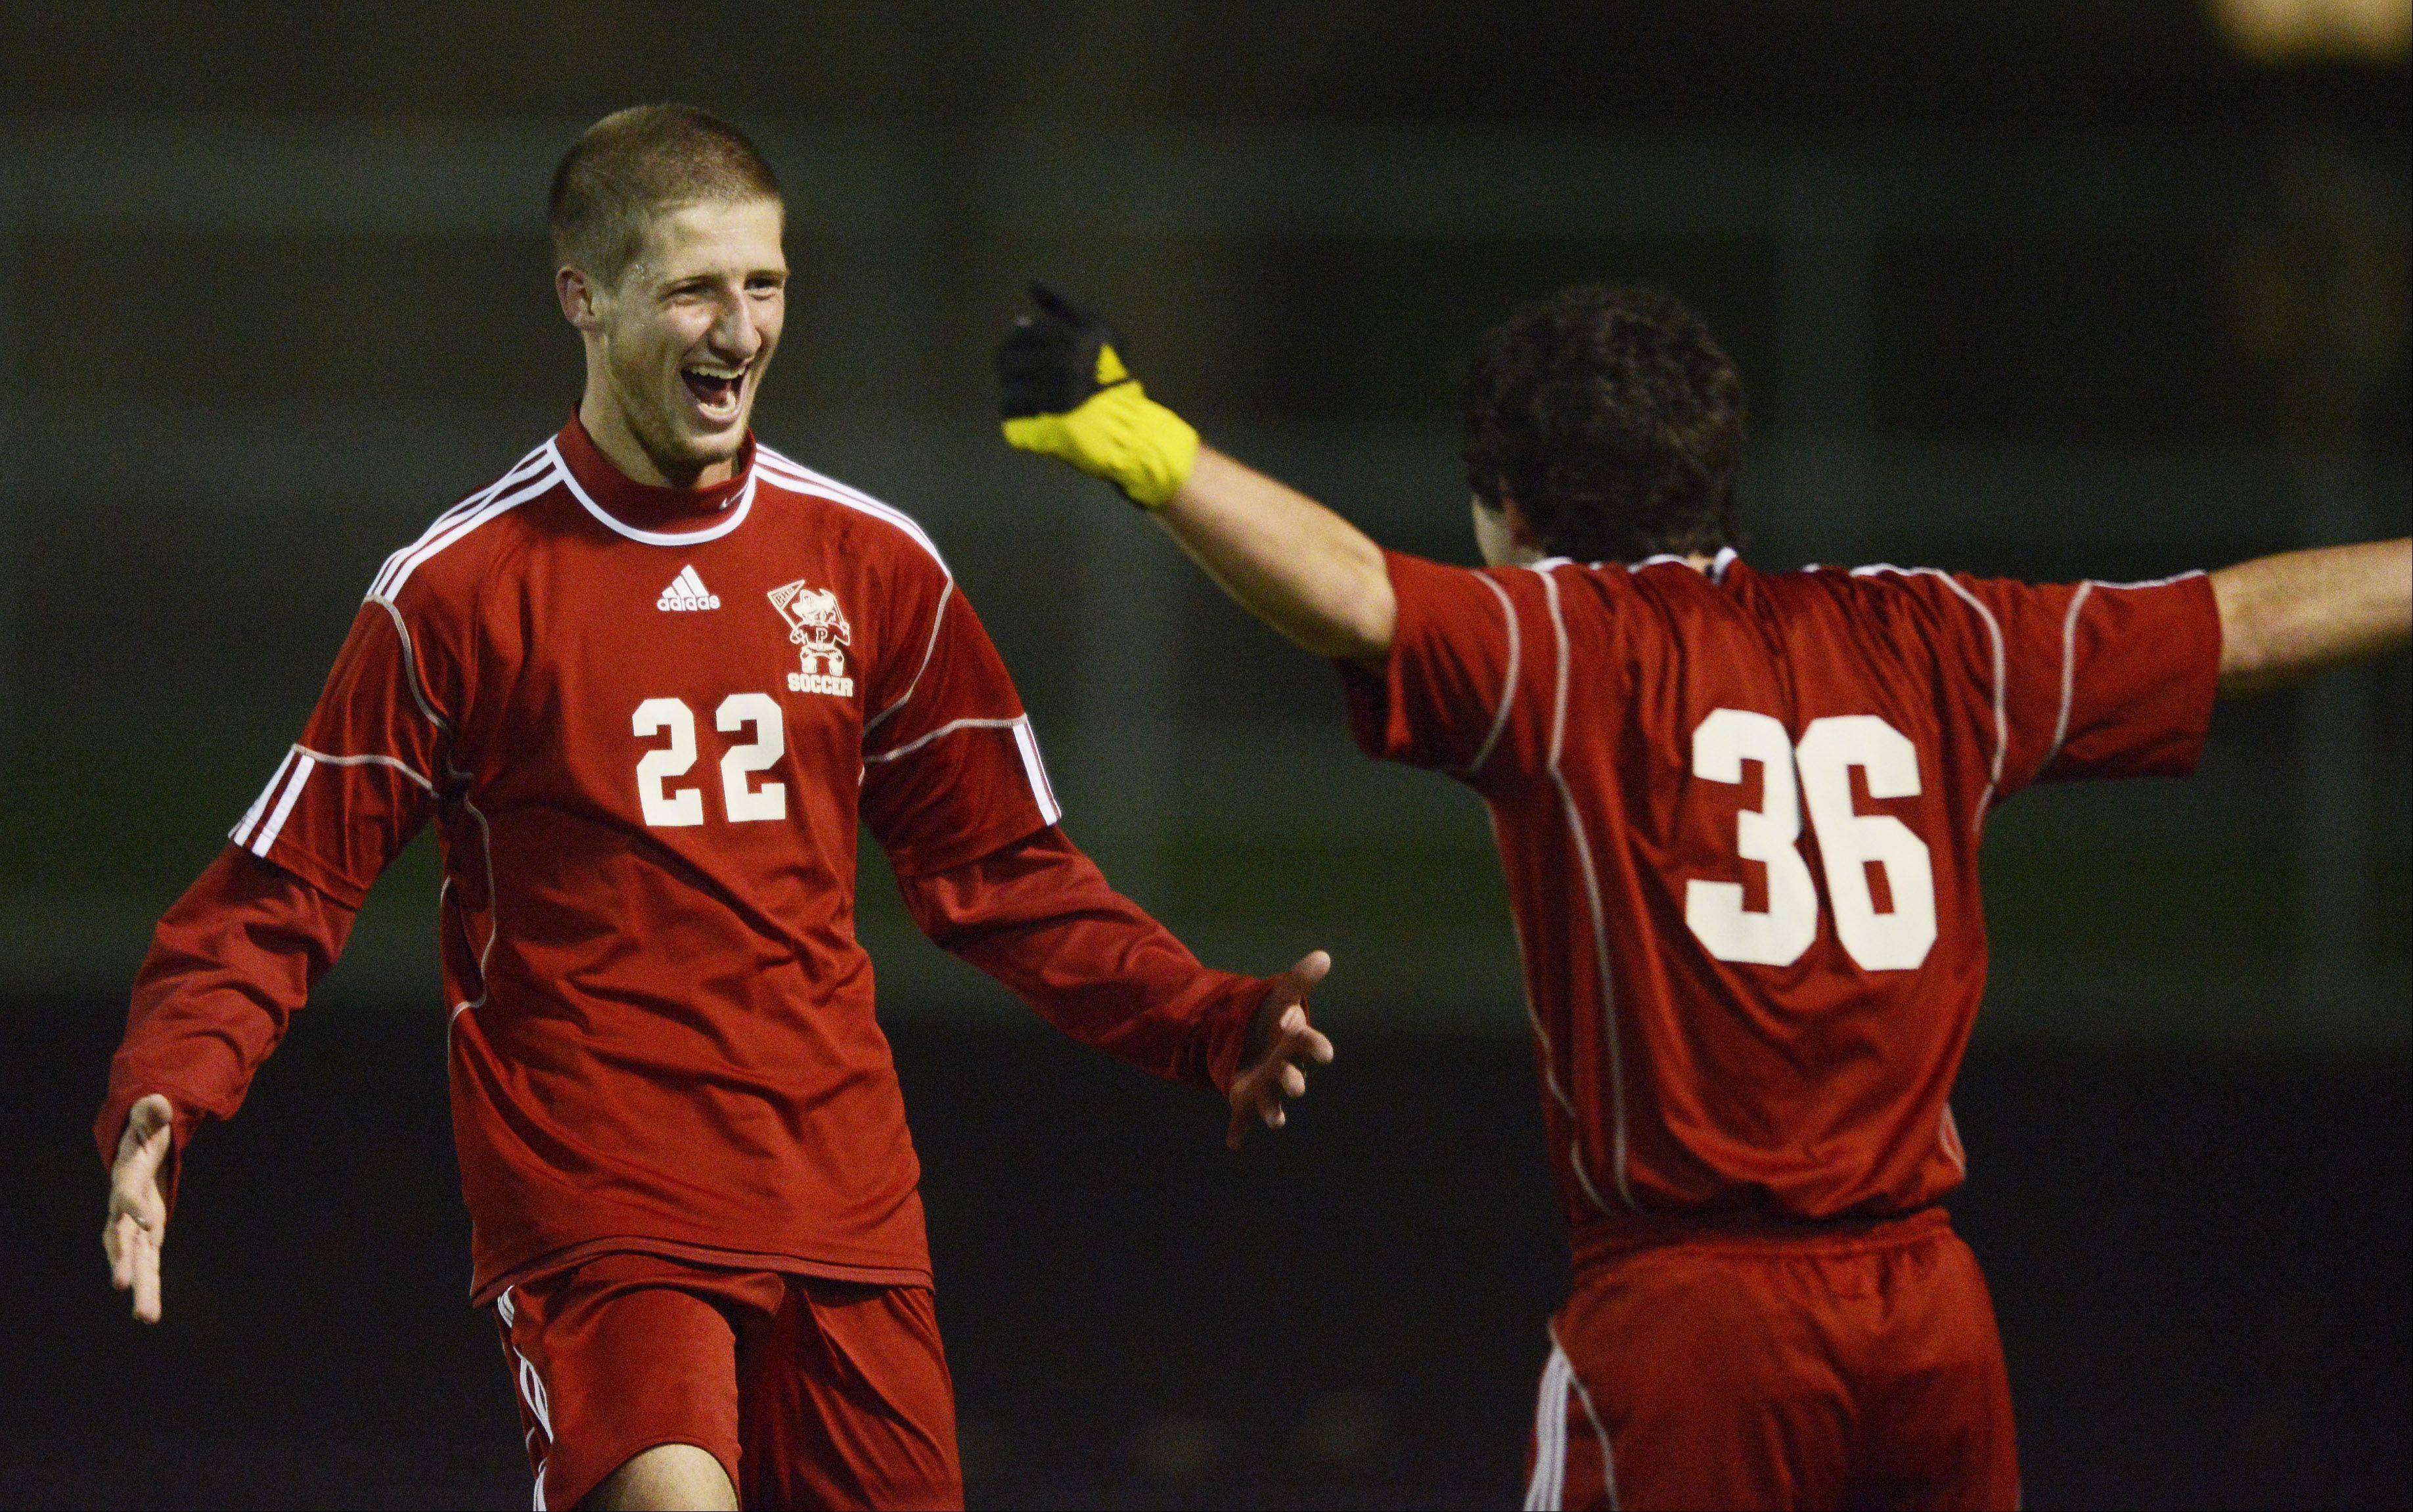 Palatine's Dan Cushing, left, and teammate Kyle Clancy celebrate a Pirates goal during the first half of Tuesday's game against Mundelein.